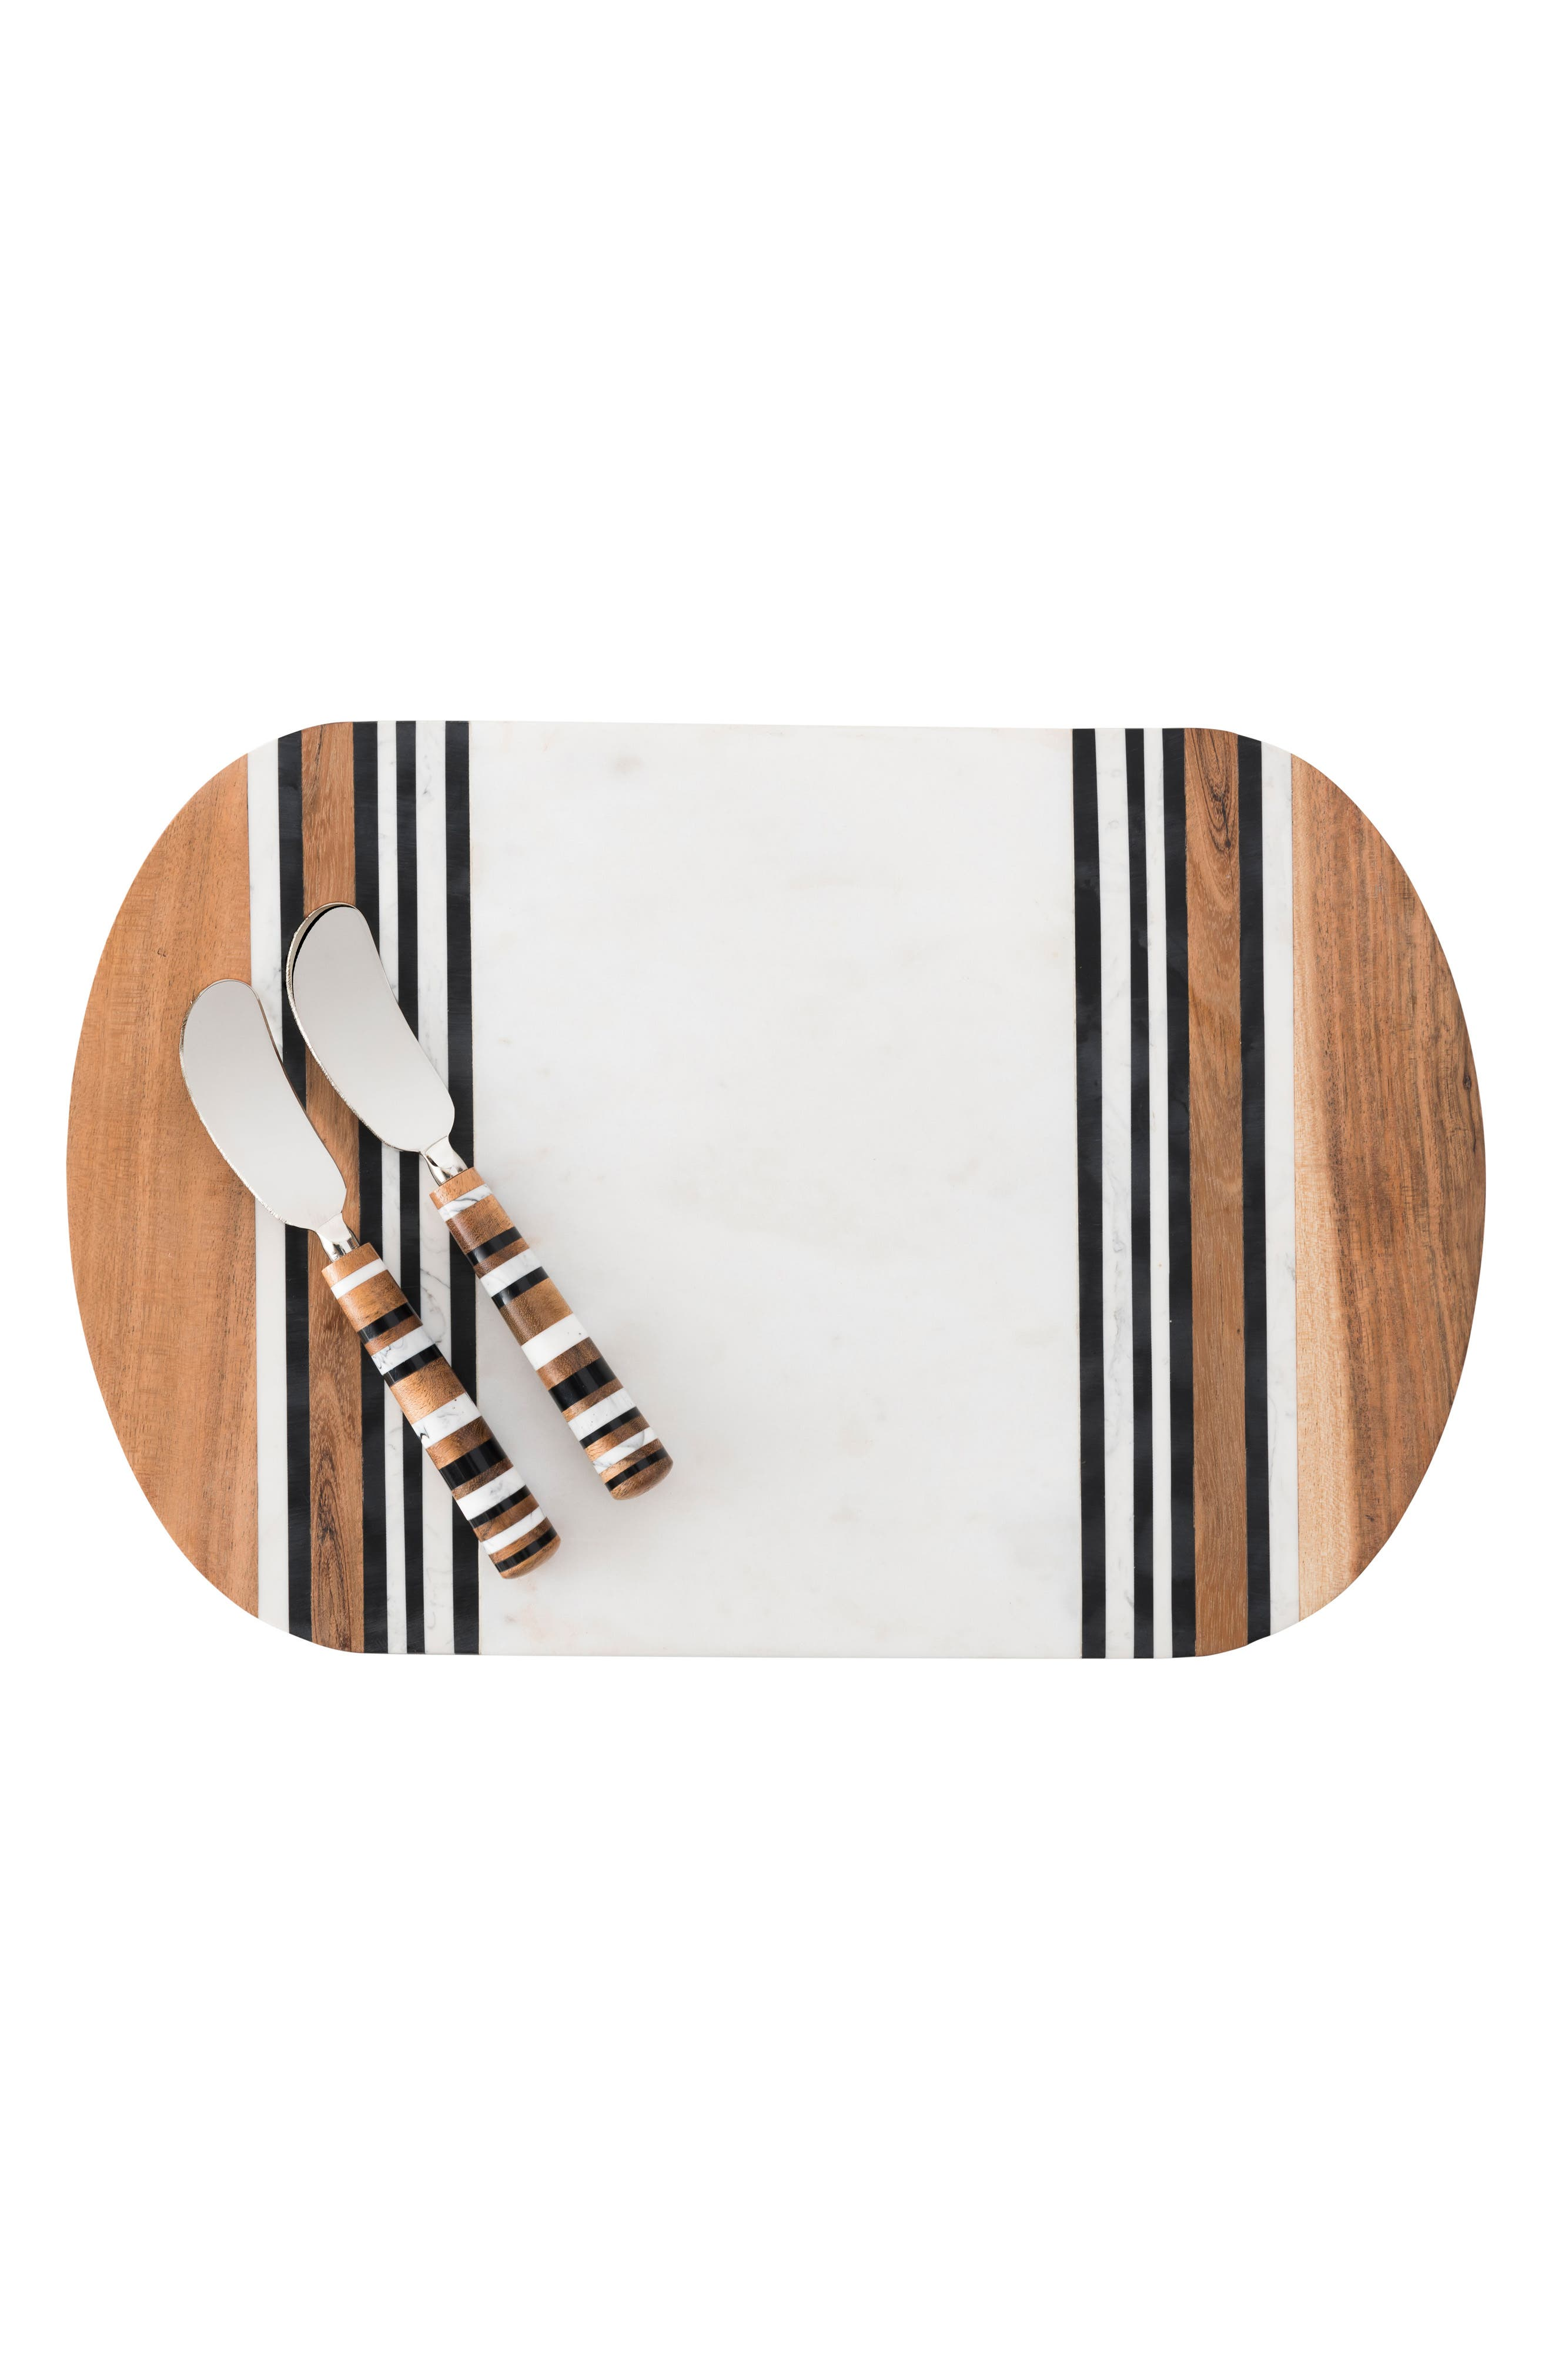 Stonewood Stripe Serving Board & Spreaders,                             Main thumbnail 1, color,                             200